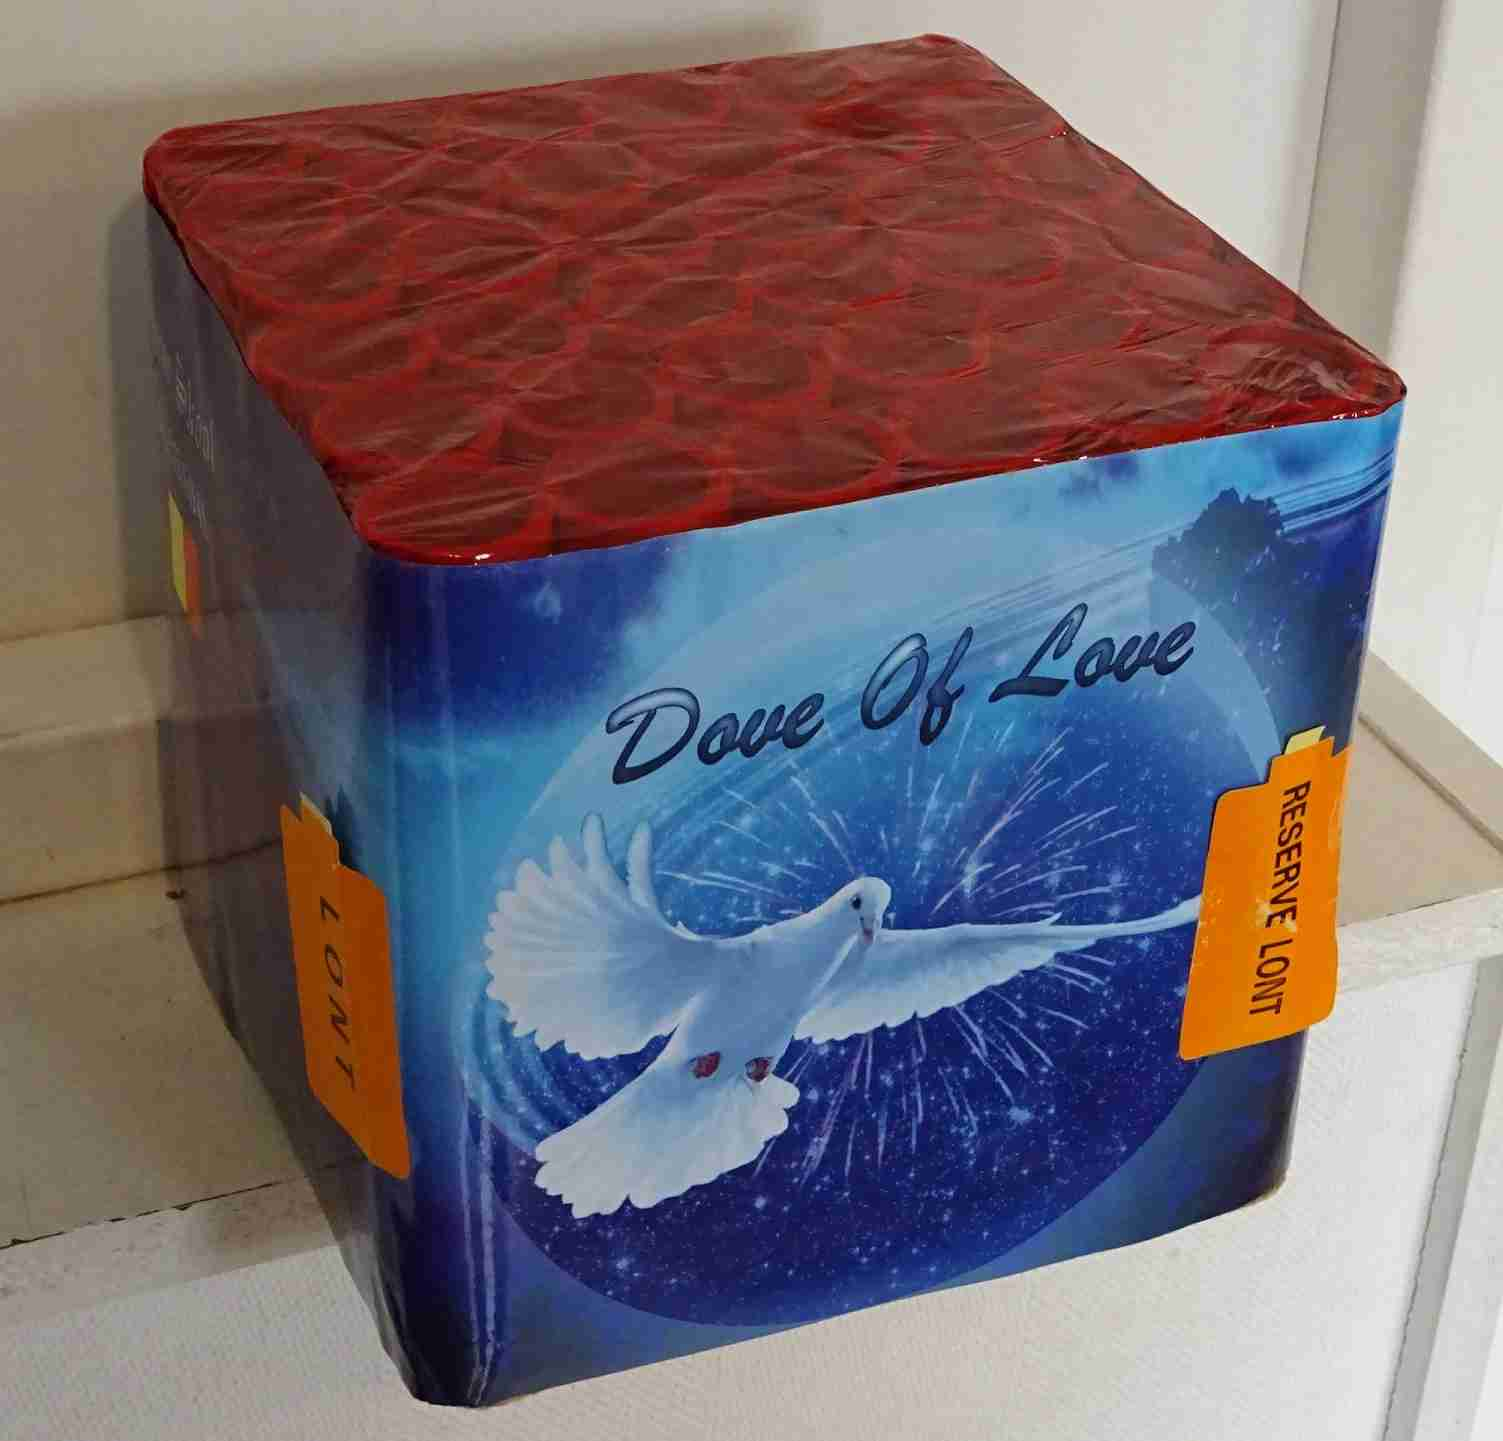 Dove of Love 36sh